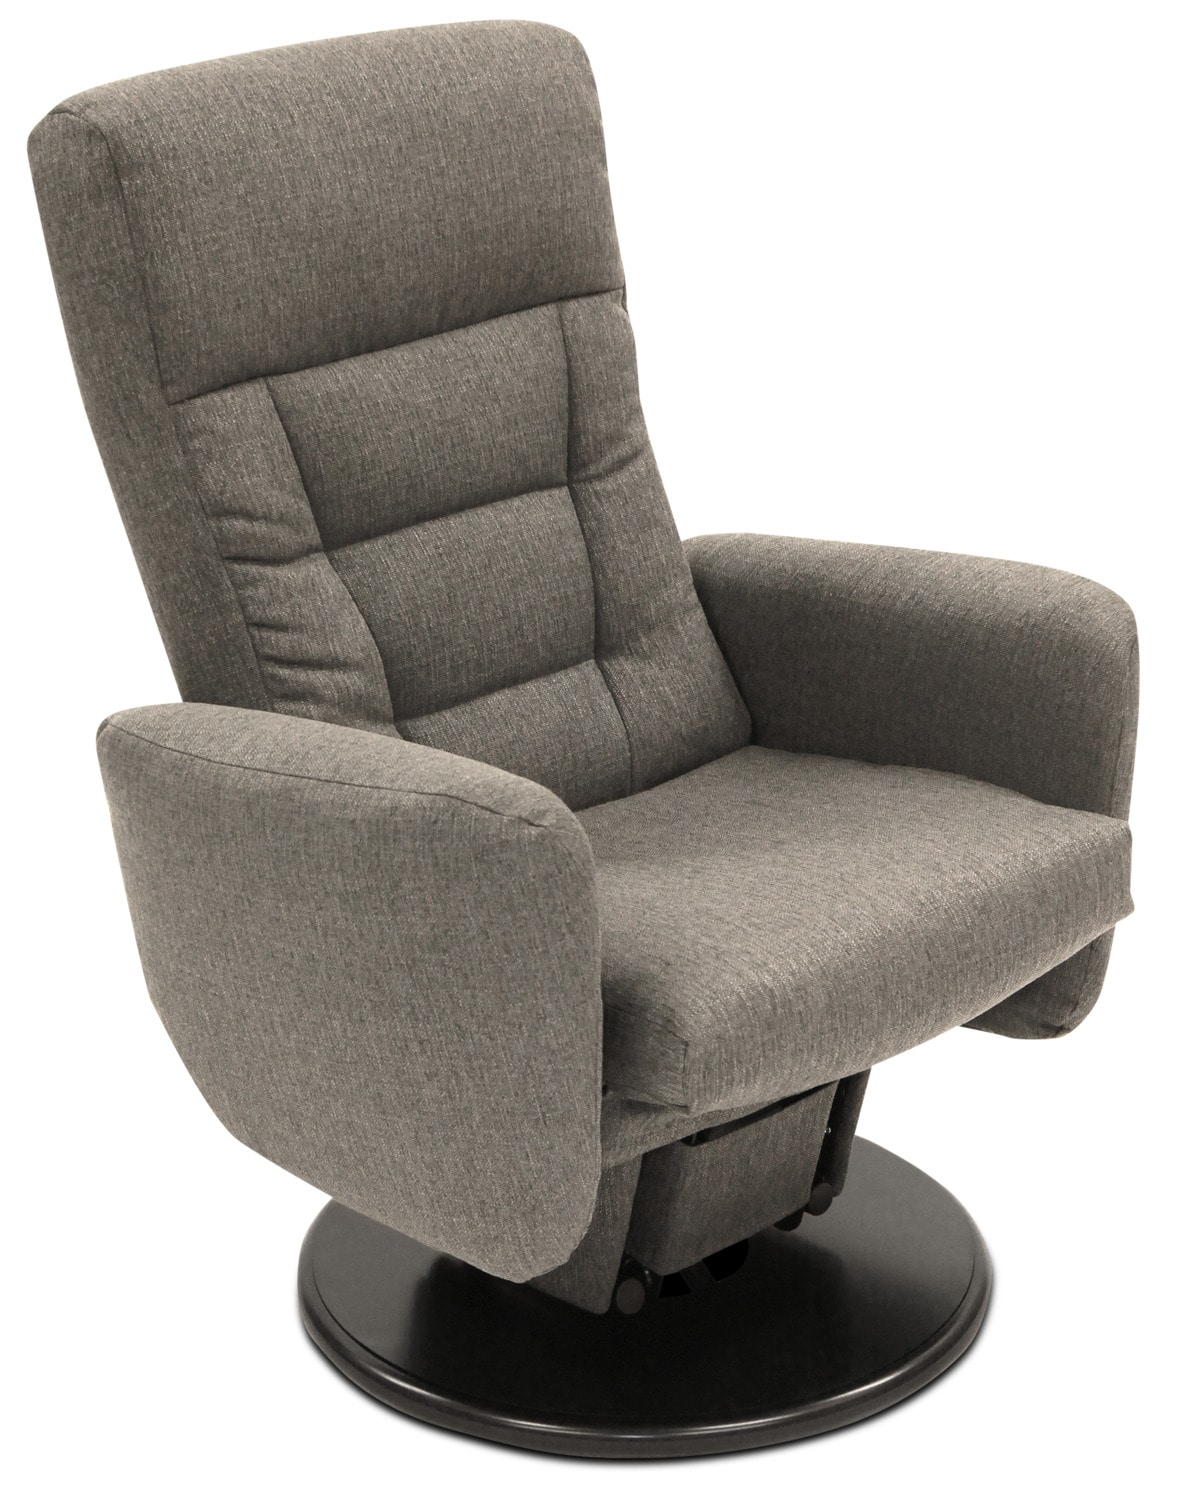 Nadia Linen-Look Fabric Swivel Glider Reclining Chair – Grey